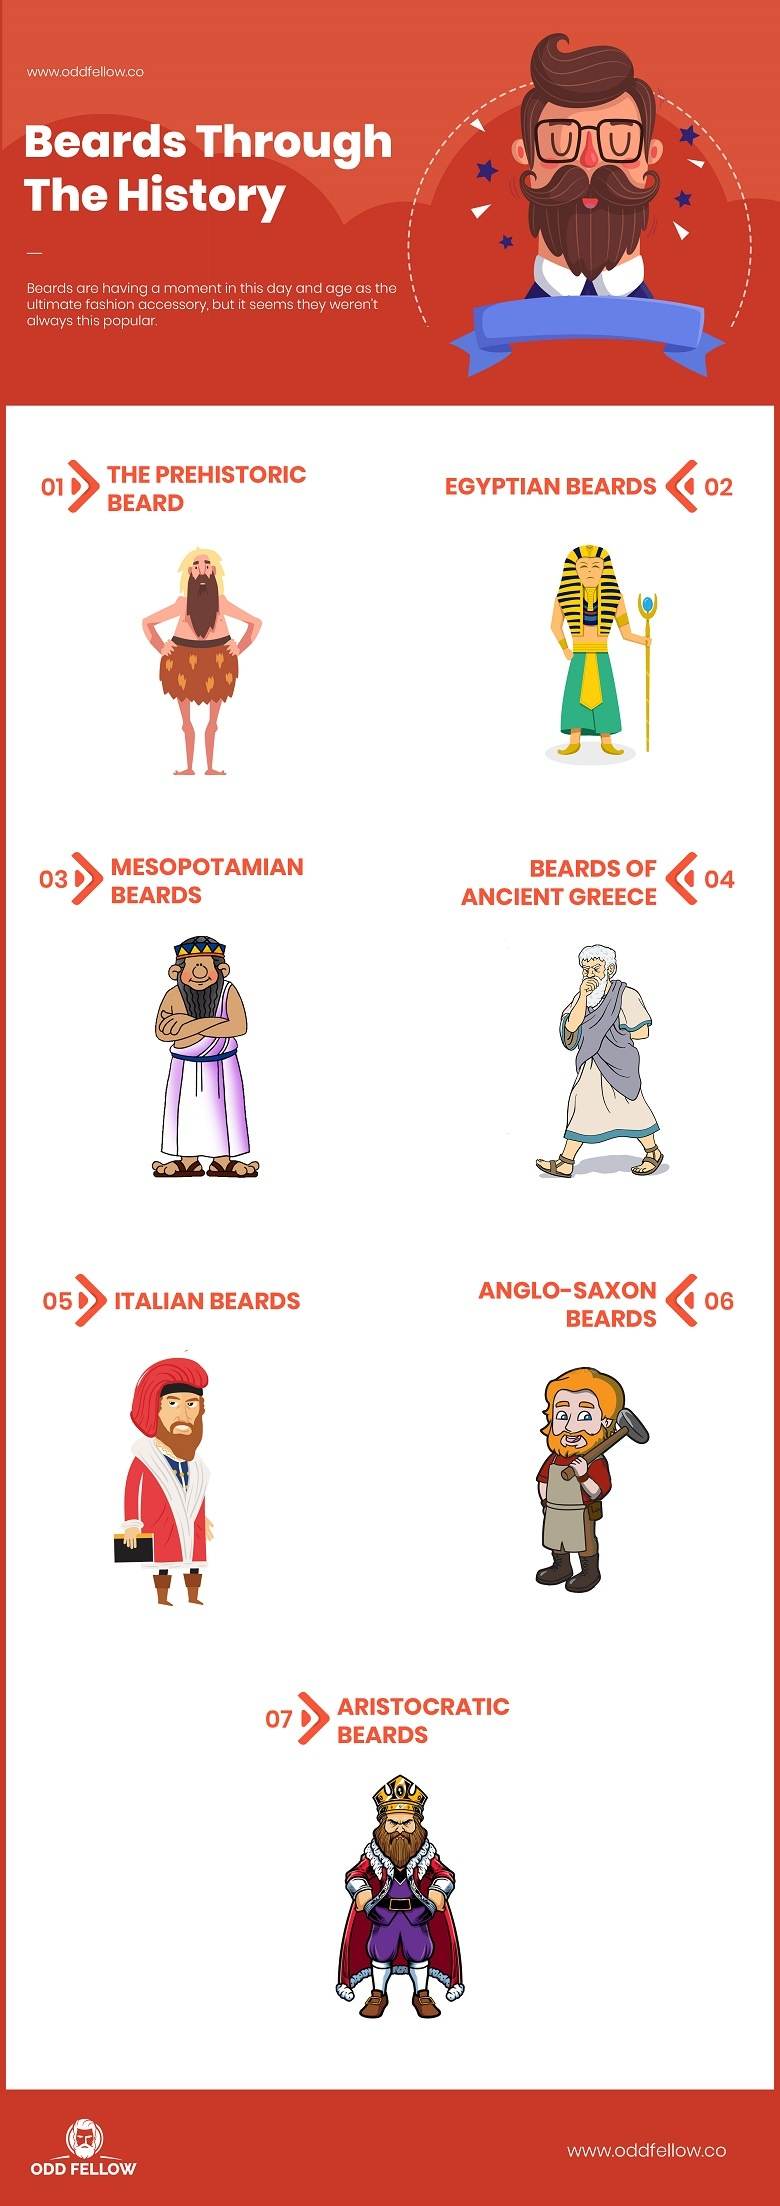 Beards Through History